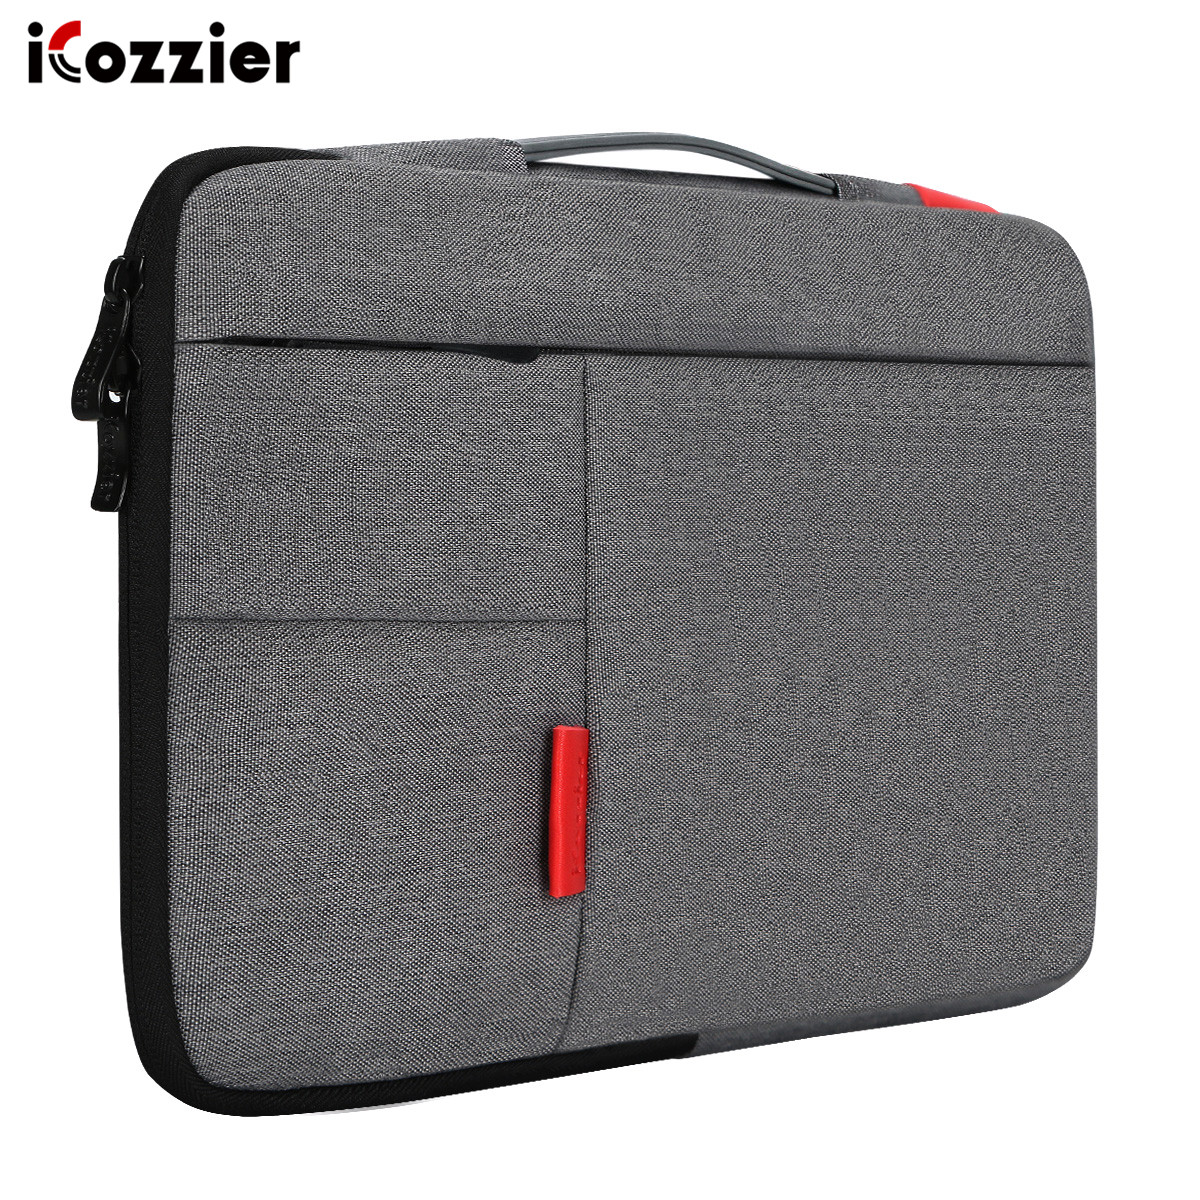 iCozzier 13.3/15.4/15.6 Man Notebook Laptop Sleeve Bag Pouch Case for Dell HP Asus Lenovo Macbook Pro 15.6 image